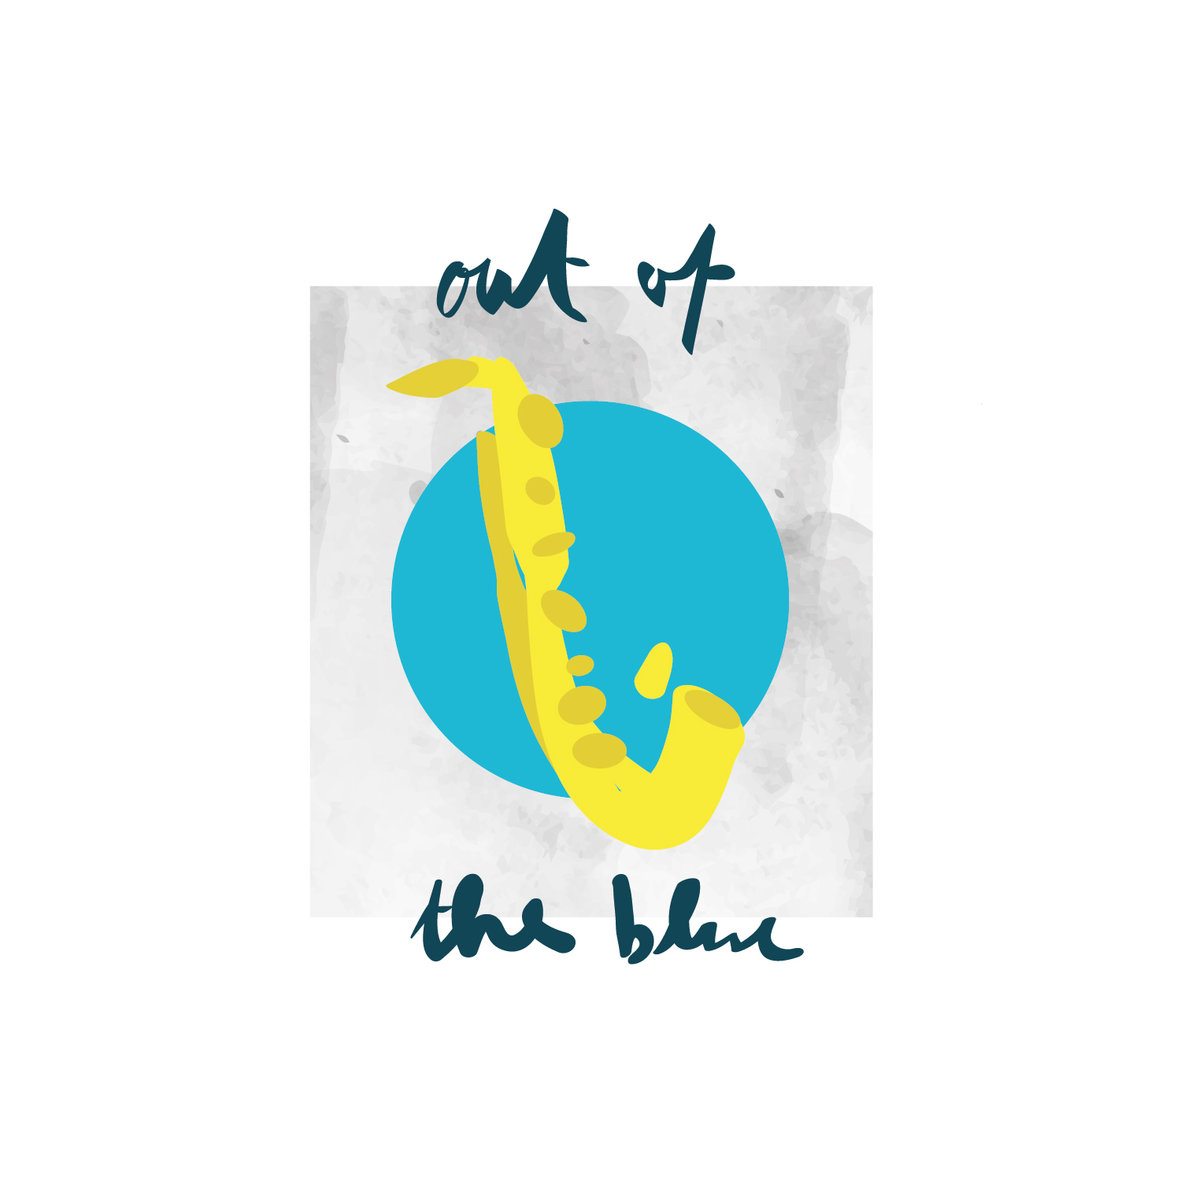 Hentzup – Out of the Blue